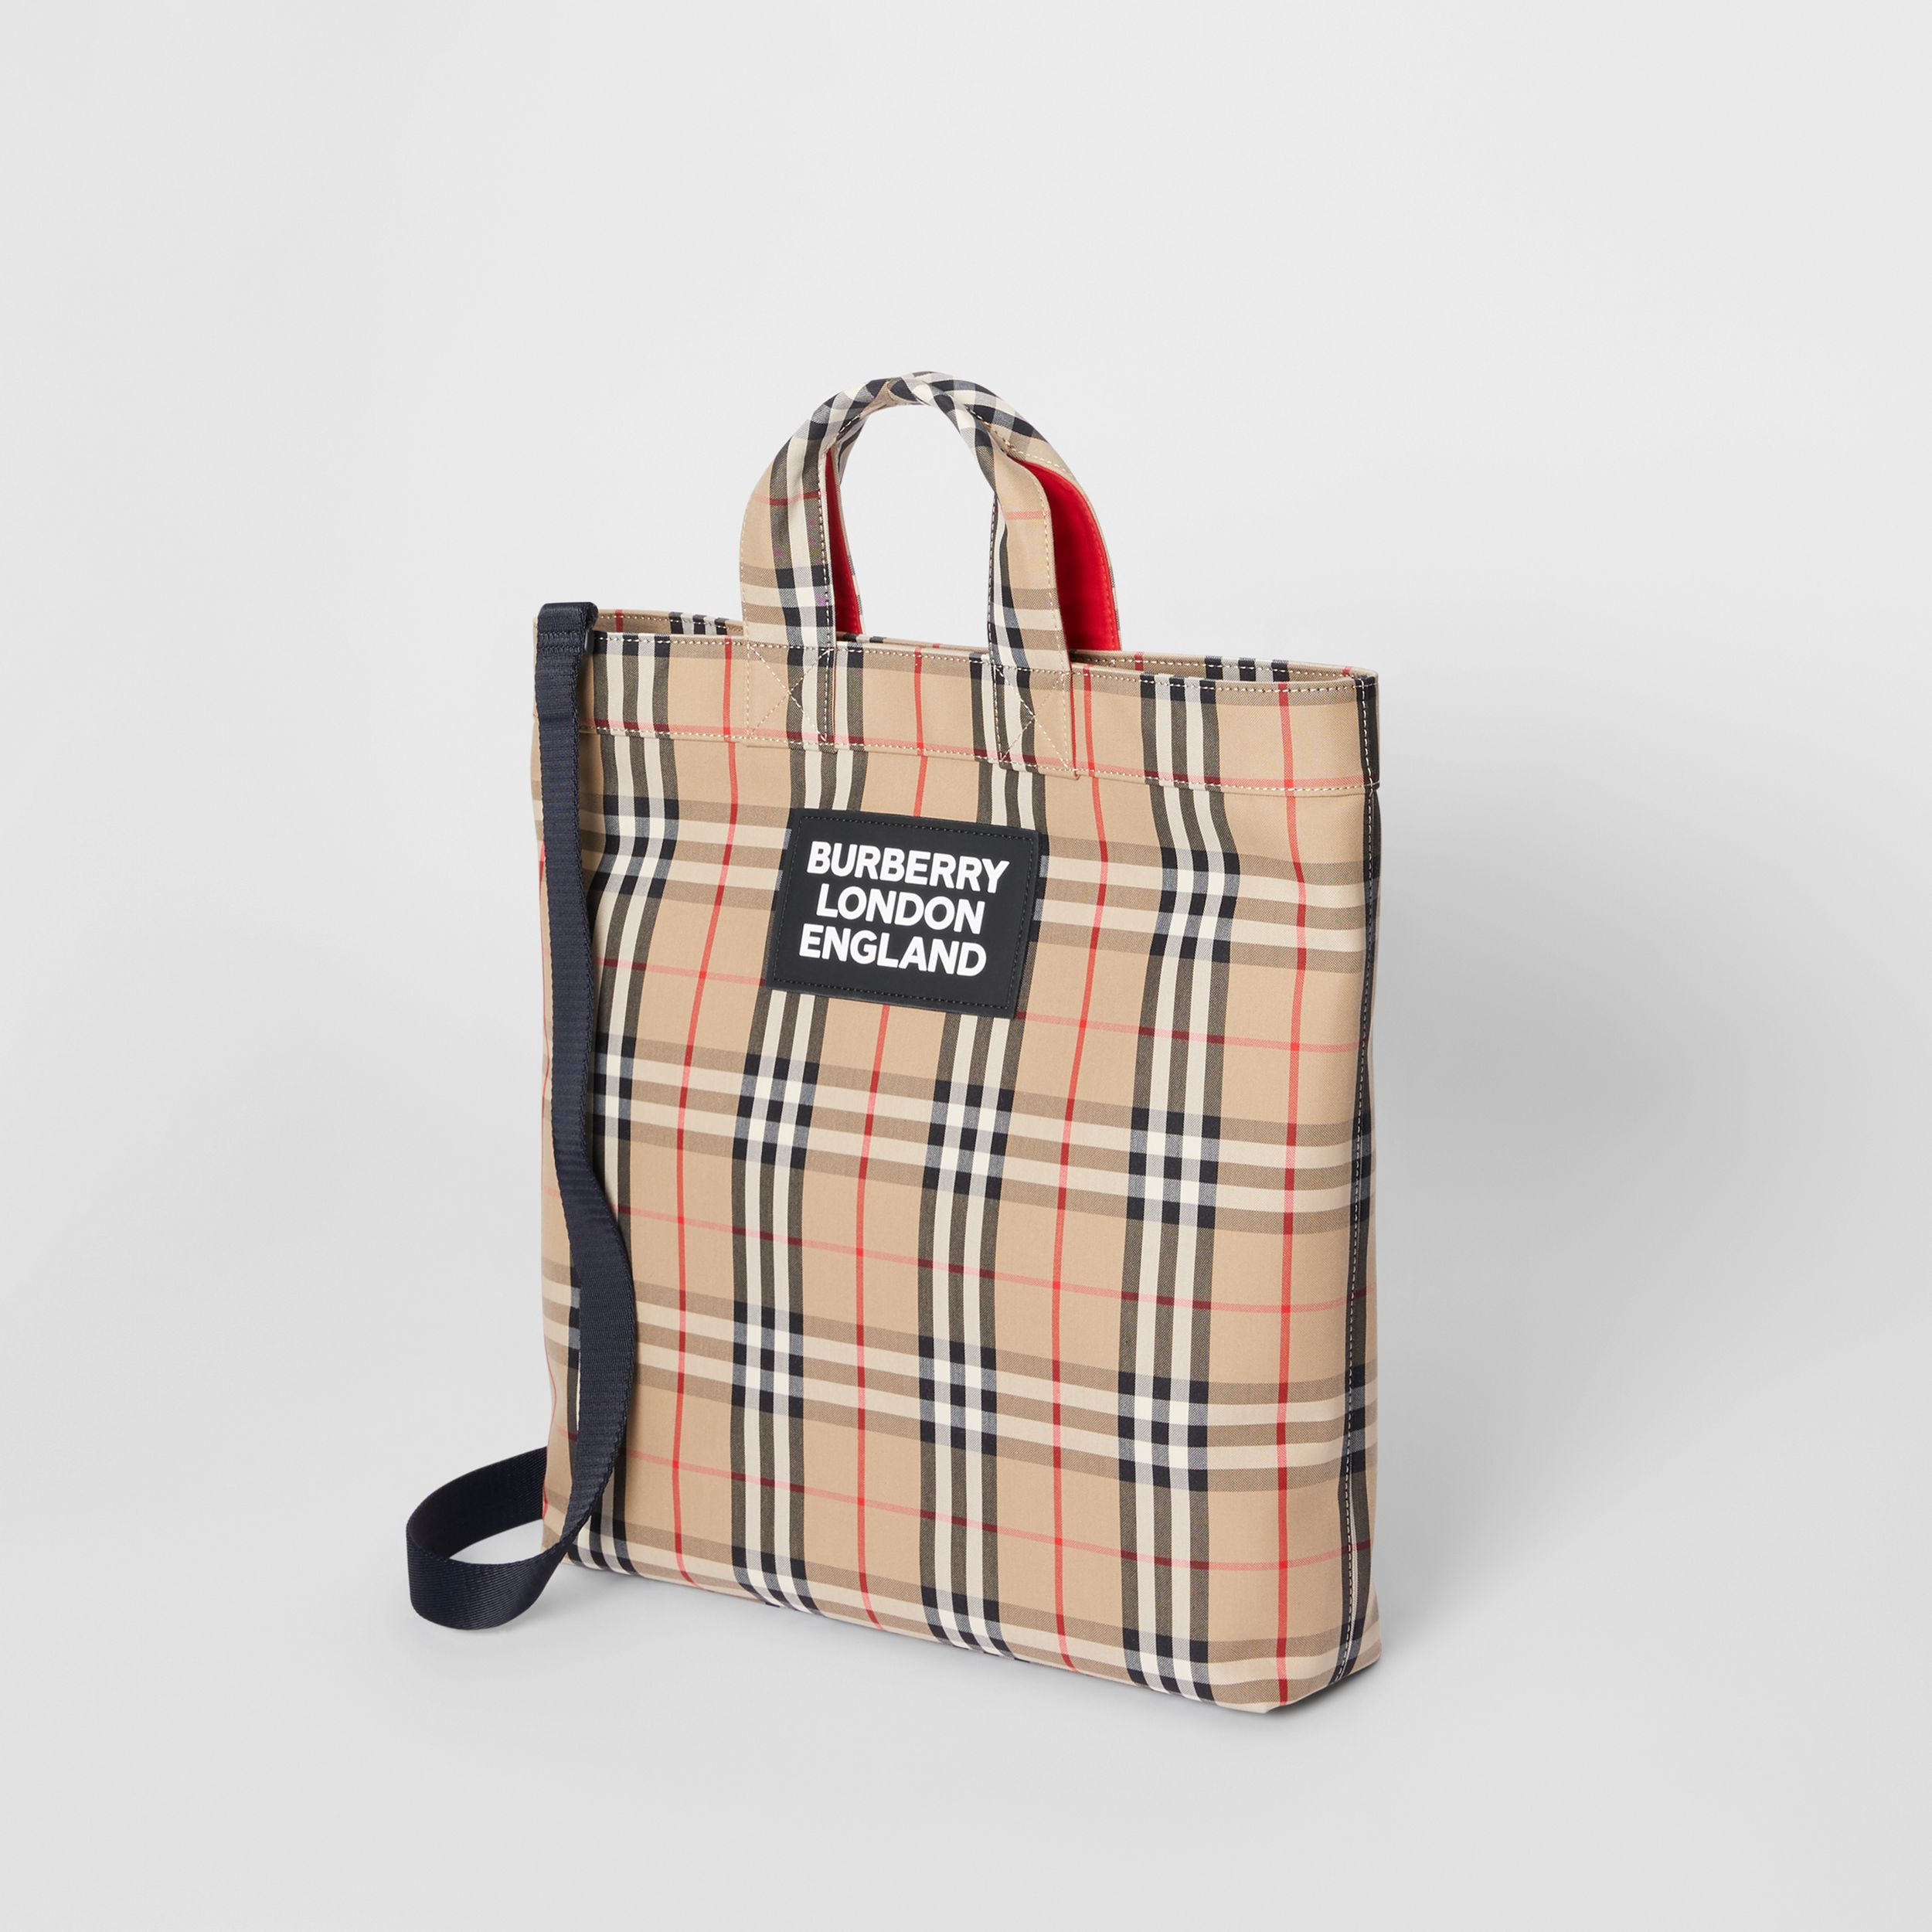 Logo Appliqué Vintage Check Cotton Blend Tote in Archive Beige - Men | Burberry - 4